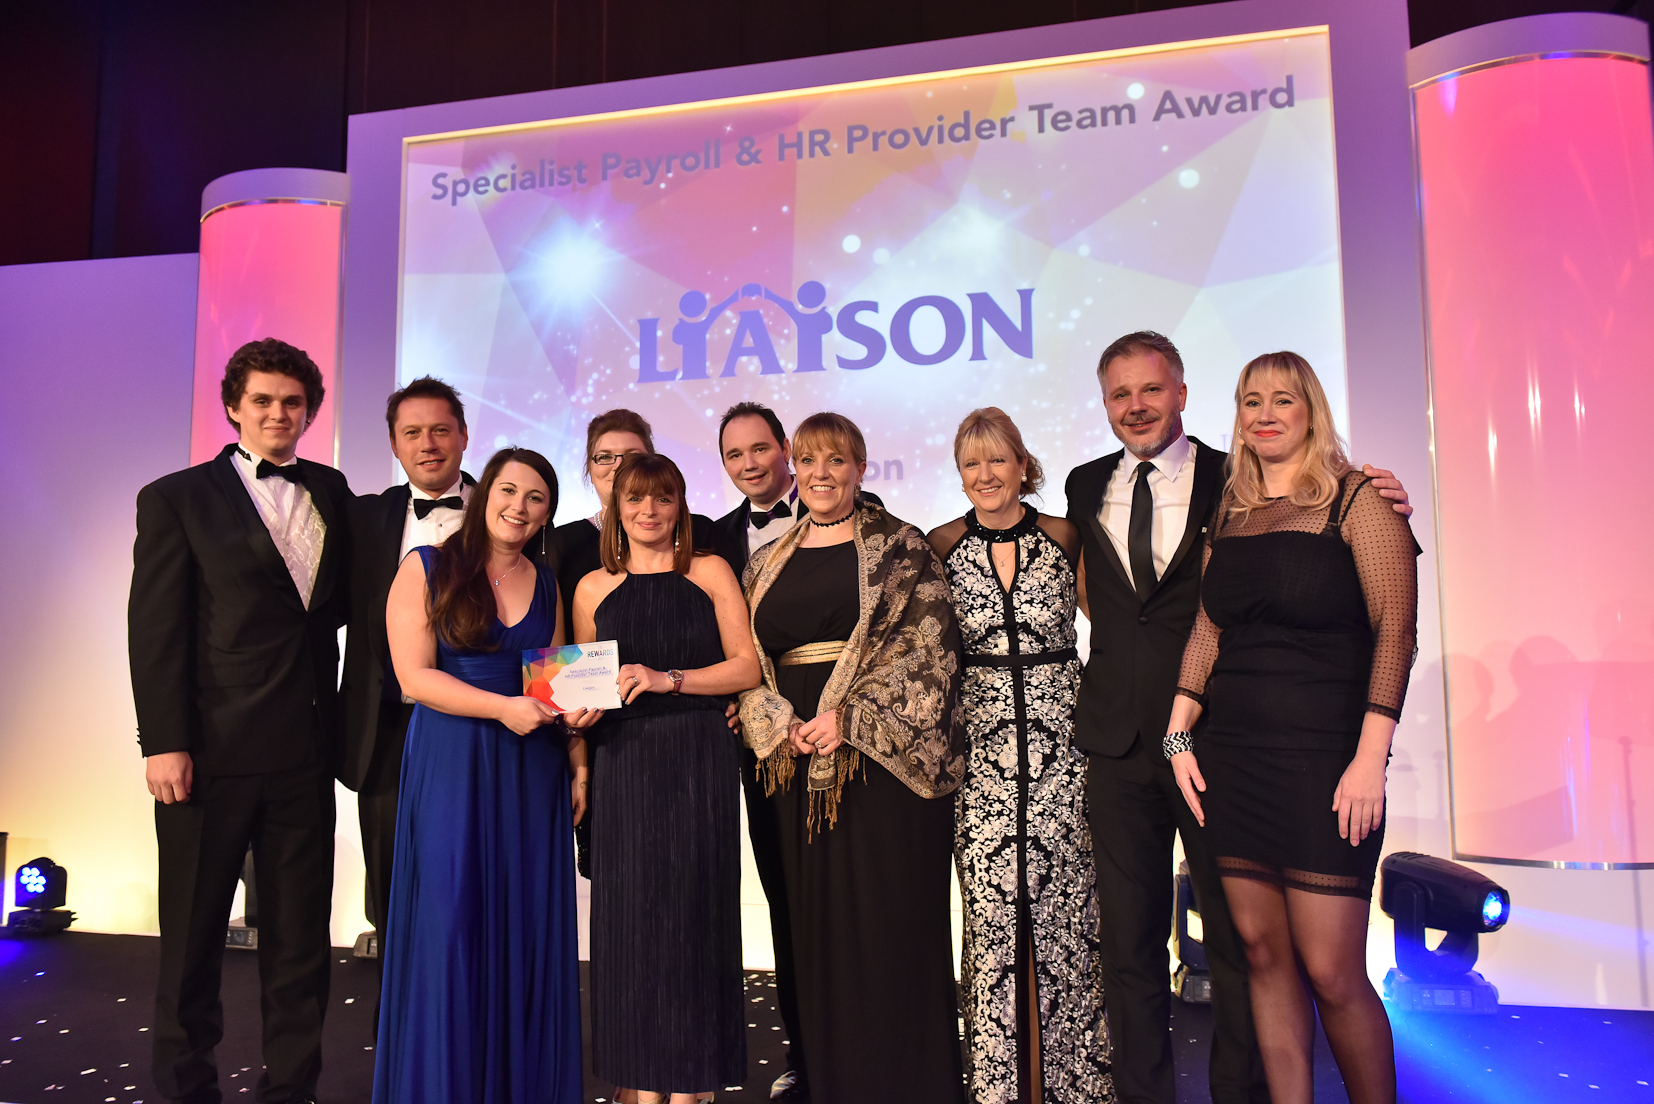 Winners 2017 - 16 Specialist Payroll & HR Provider Team Award